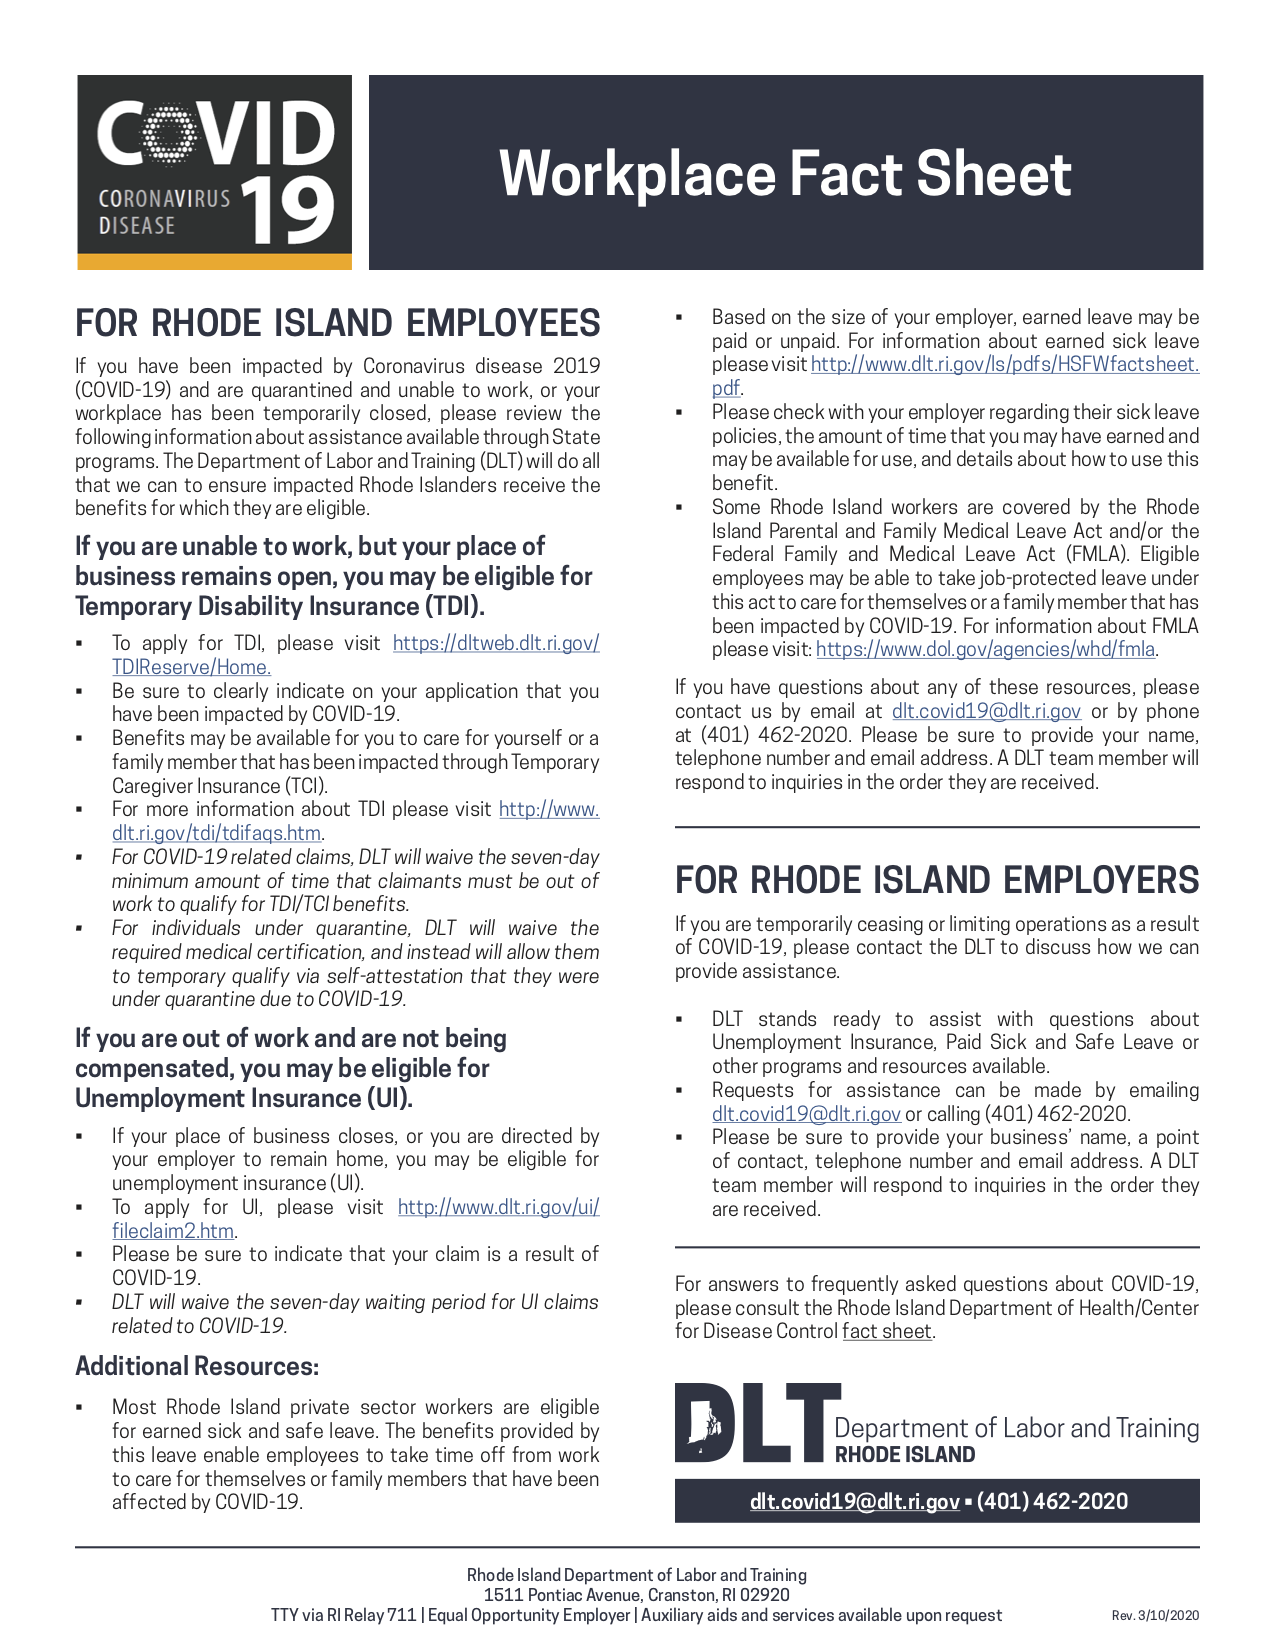 COVID-19-Workplace-Fact-Sheet.png